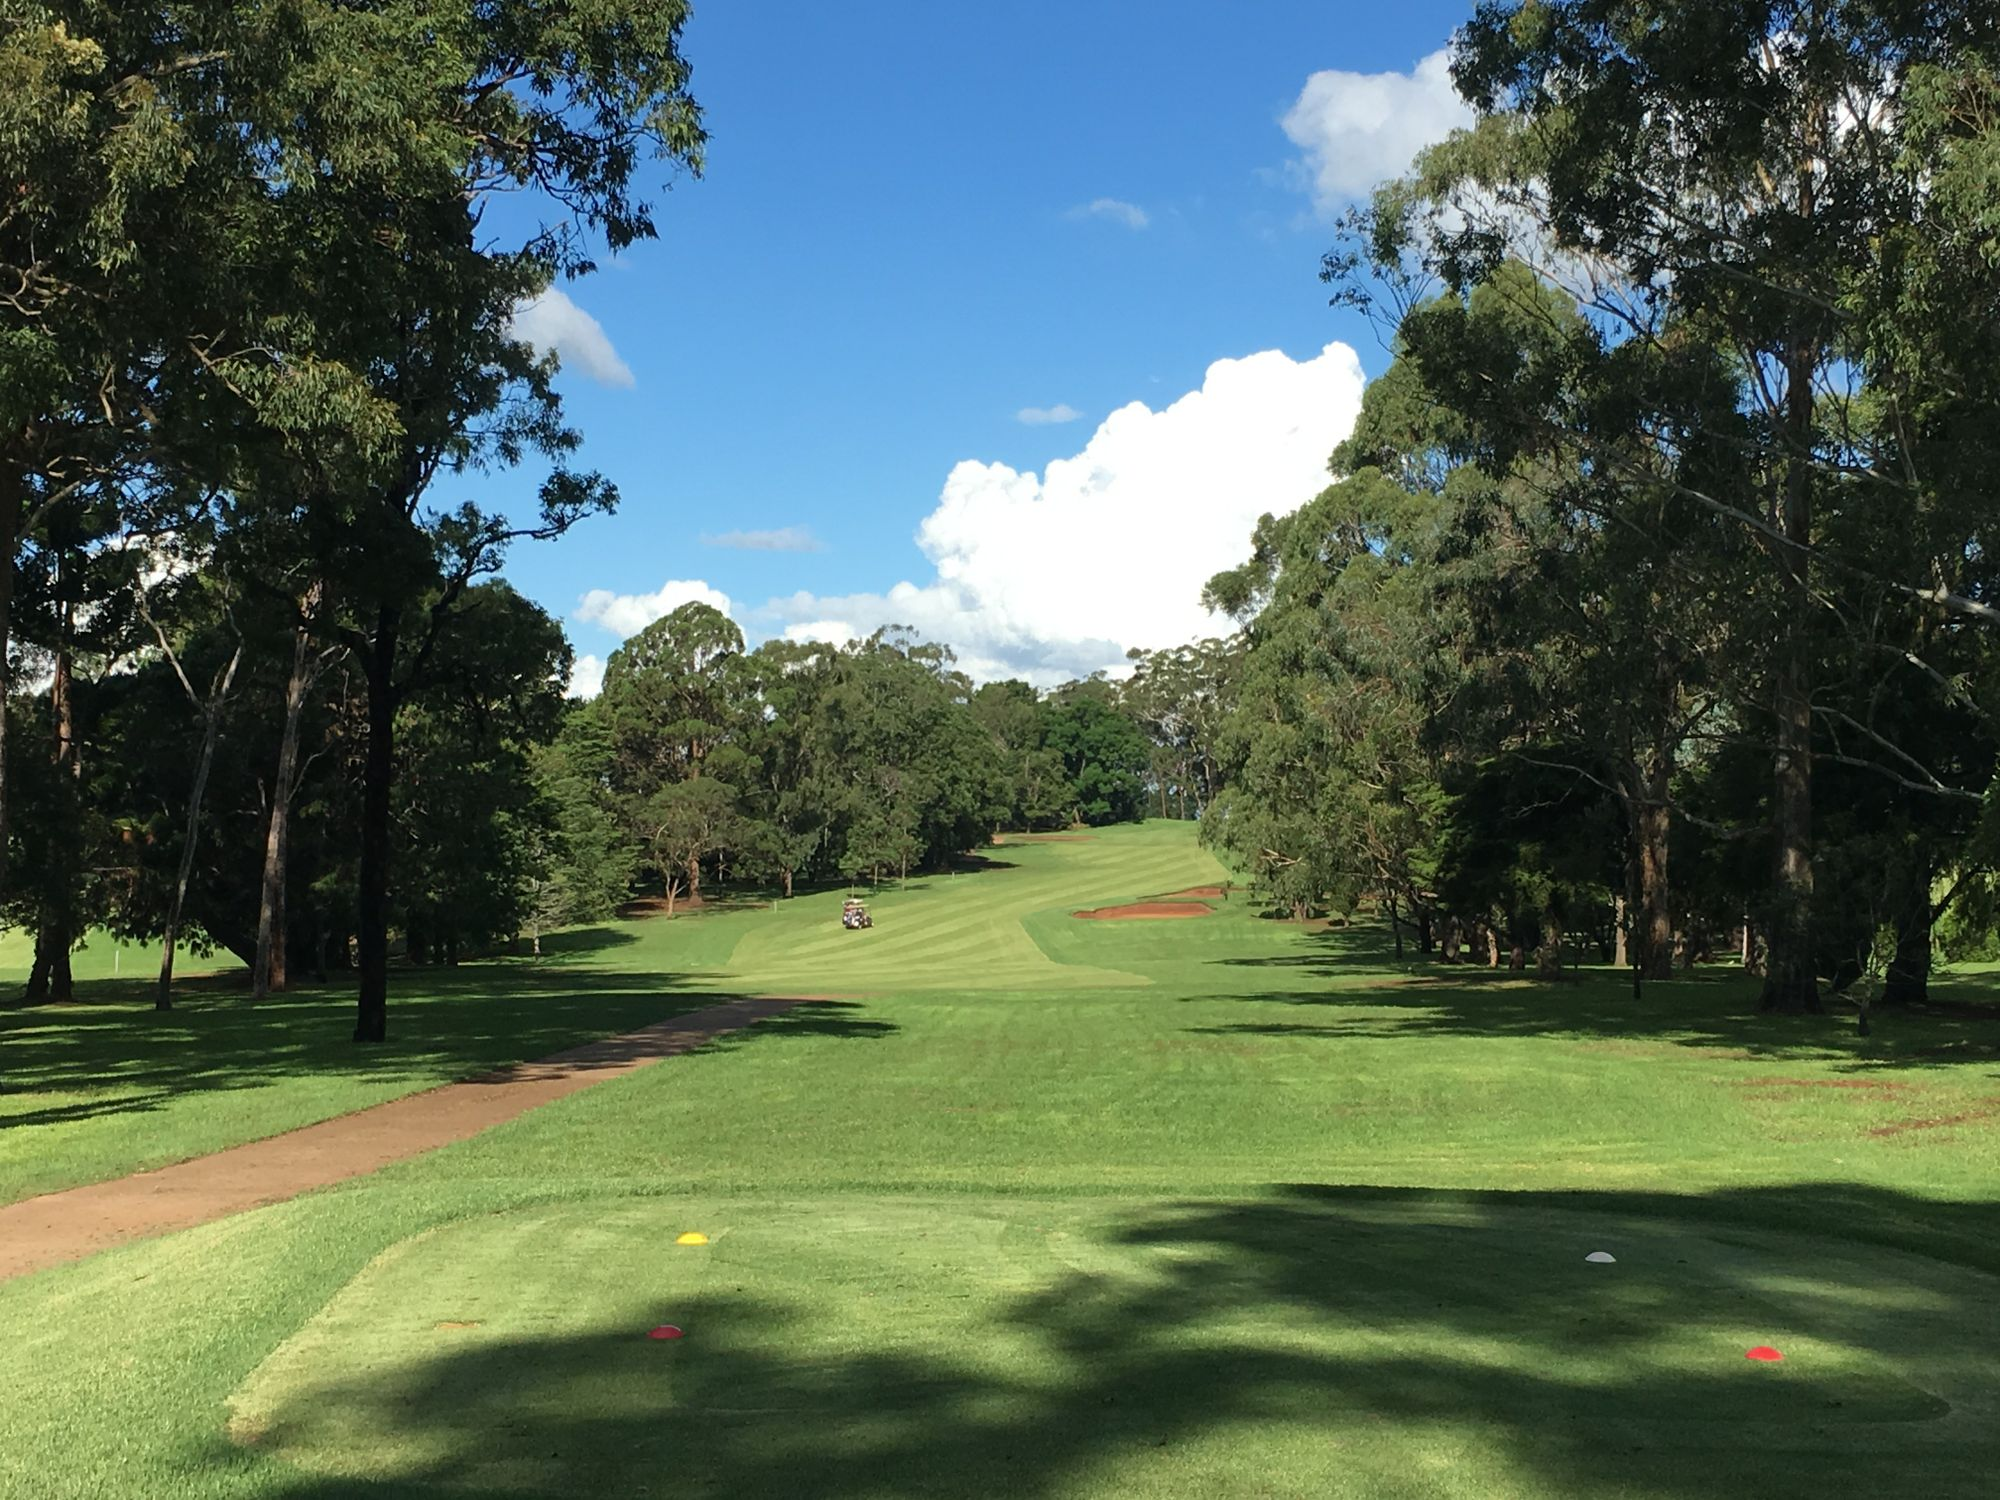 Lush, green fairways, trees swaying in the breeze, blue skies overhead - Toowoomba Golf Club Middle Range lays on the perfect day for golf.